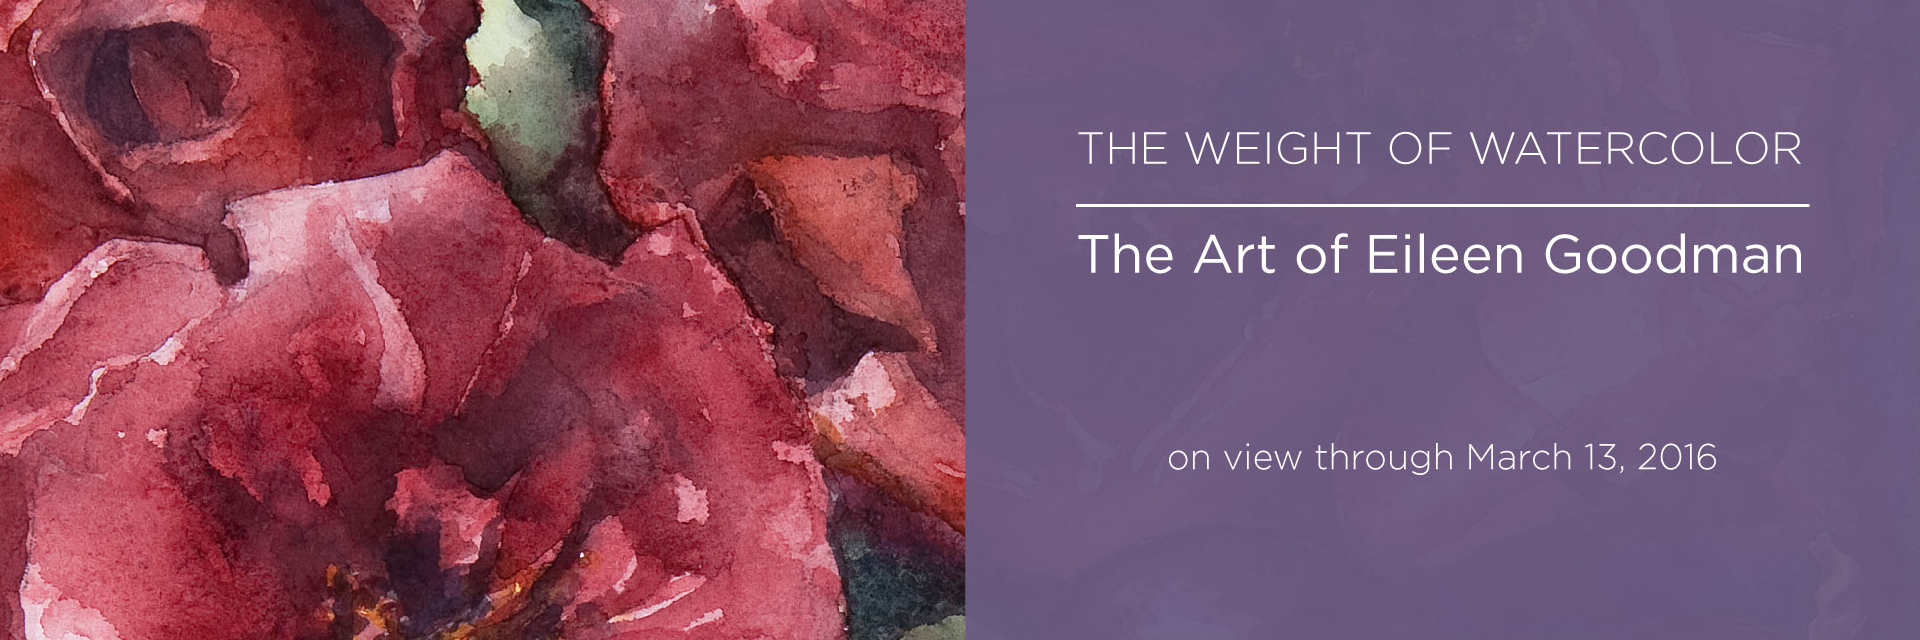 The Weight of Watercolor: The Art of Eileen Goodman